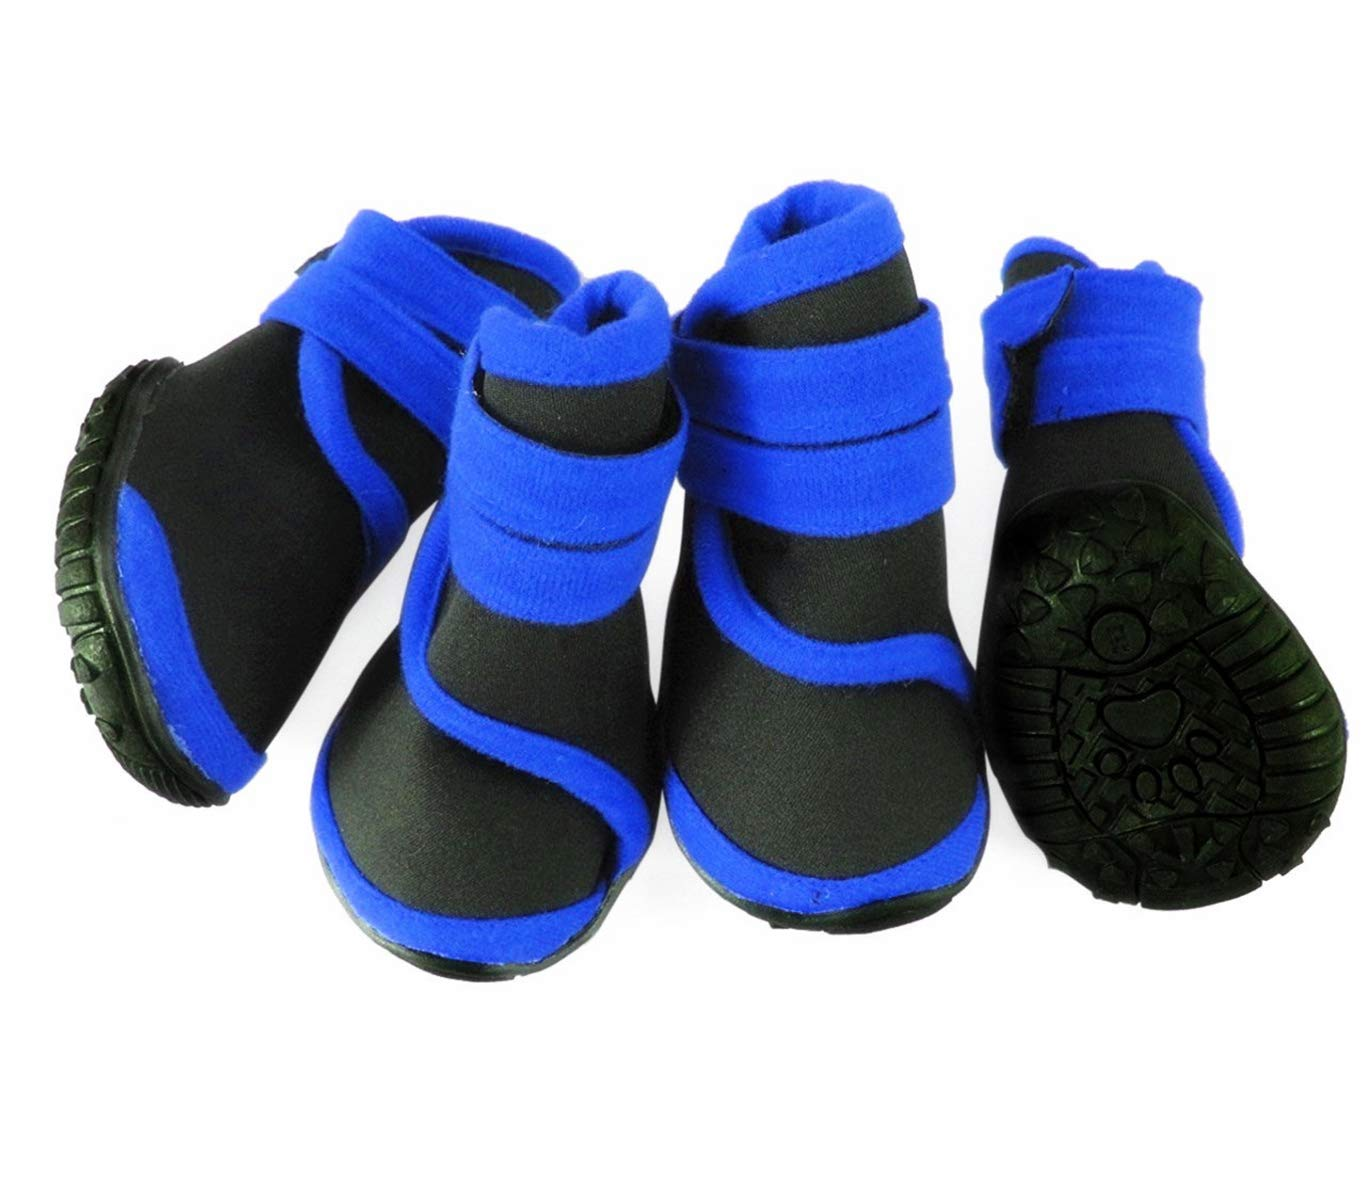 abcGoodefg 4pcs Pet Dog Shoes-Puppy Nonslip Sport Shoes Sneaker Boots Rubber Sole - Size XS (L, Blue)